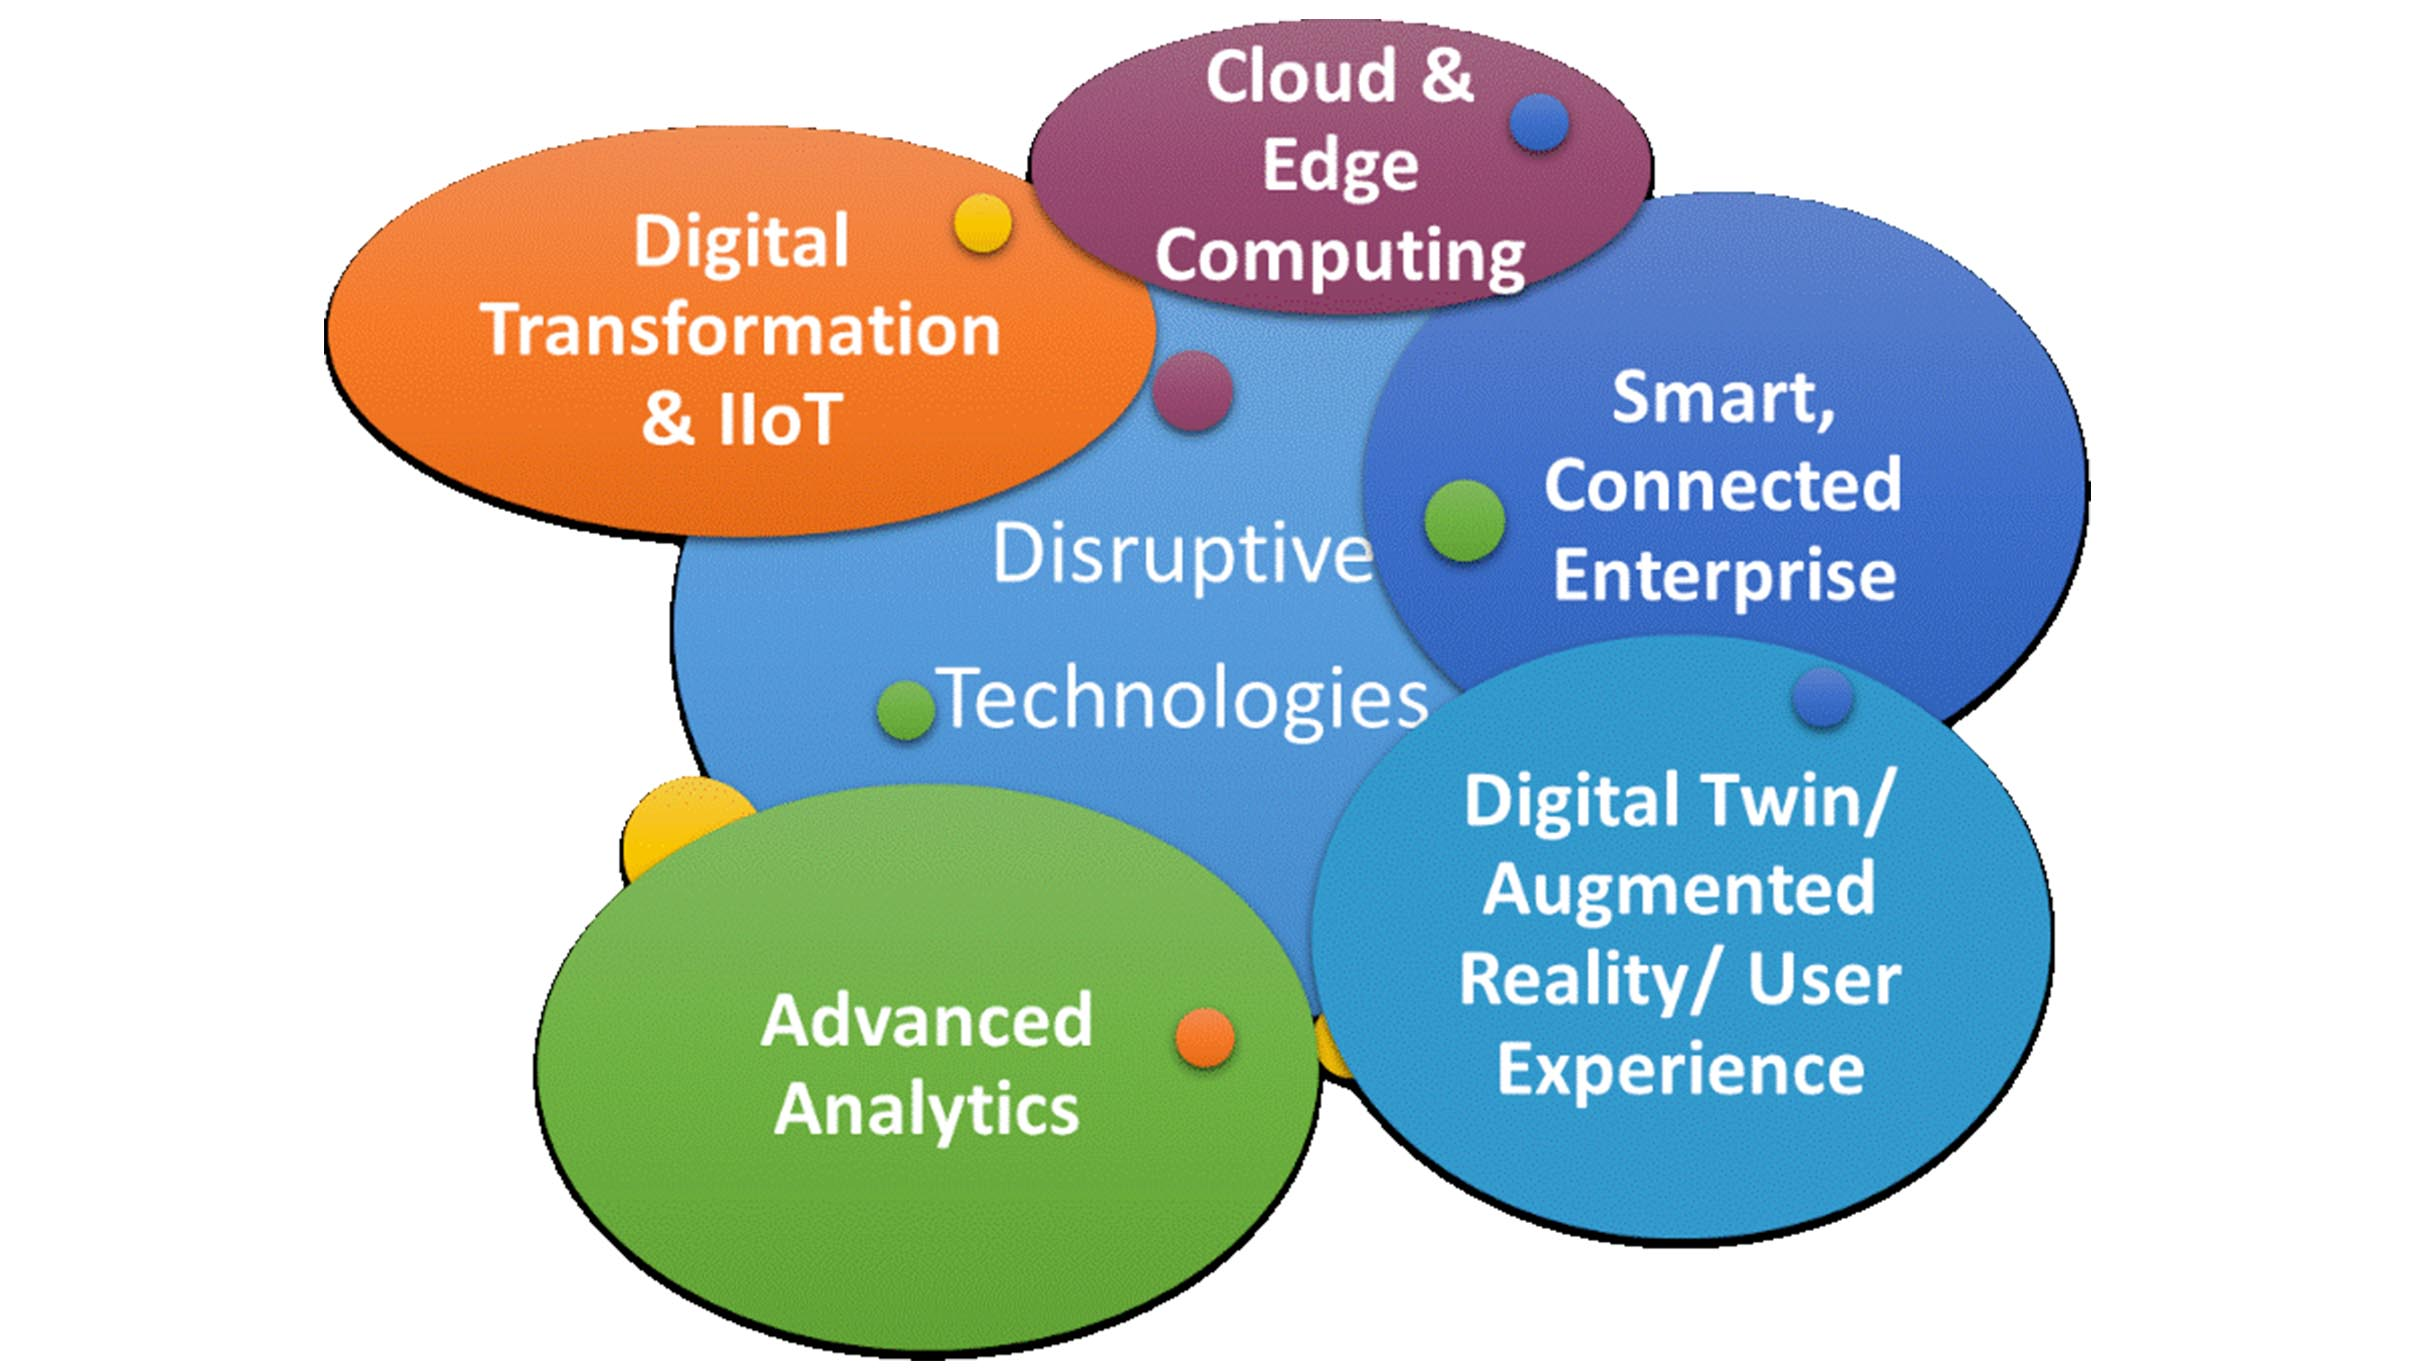 Newer Technologies including advanced analytics and digital twin Impacting Next Gen MES